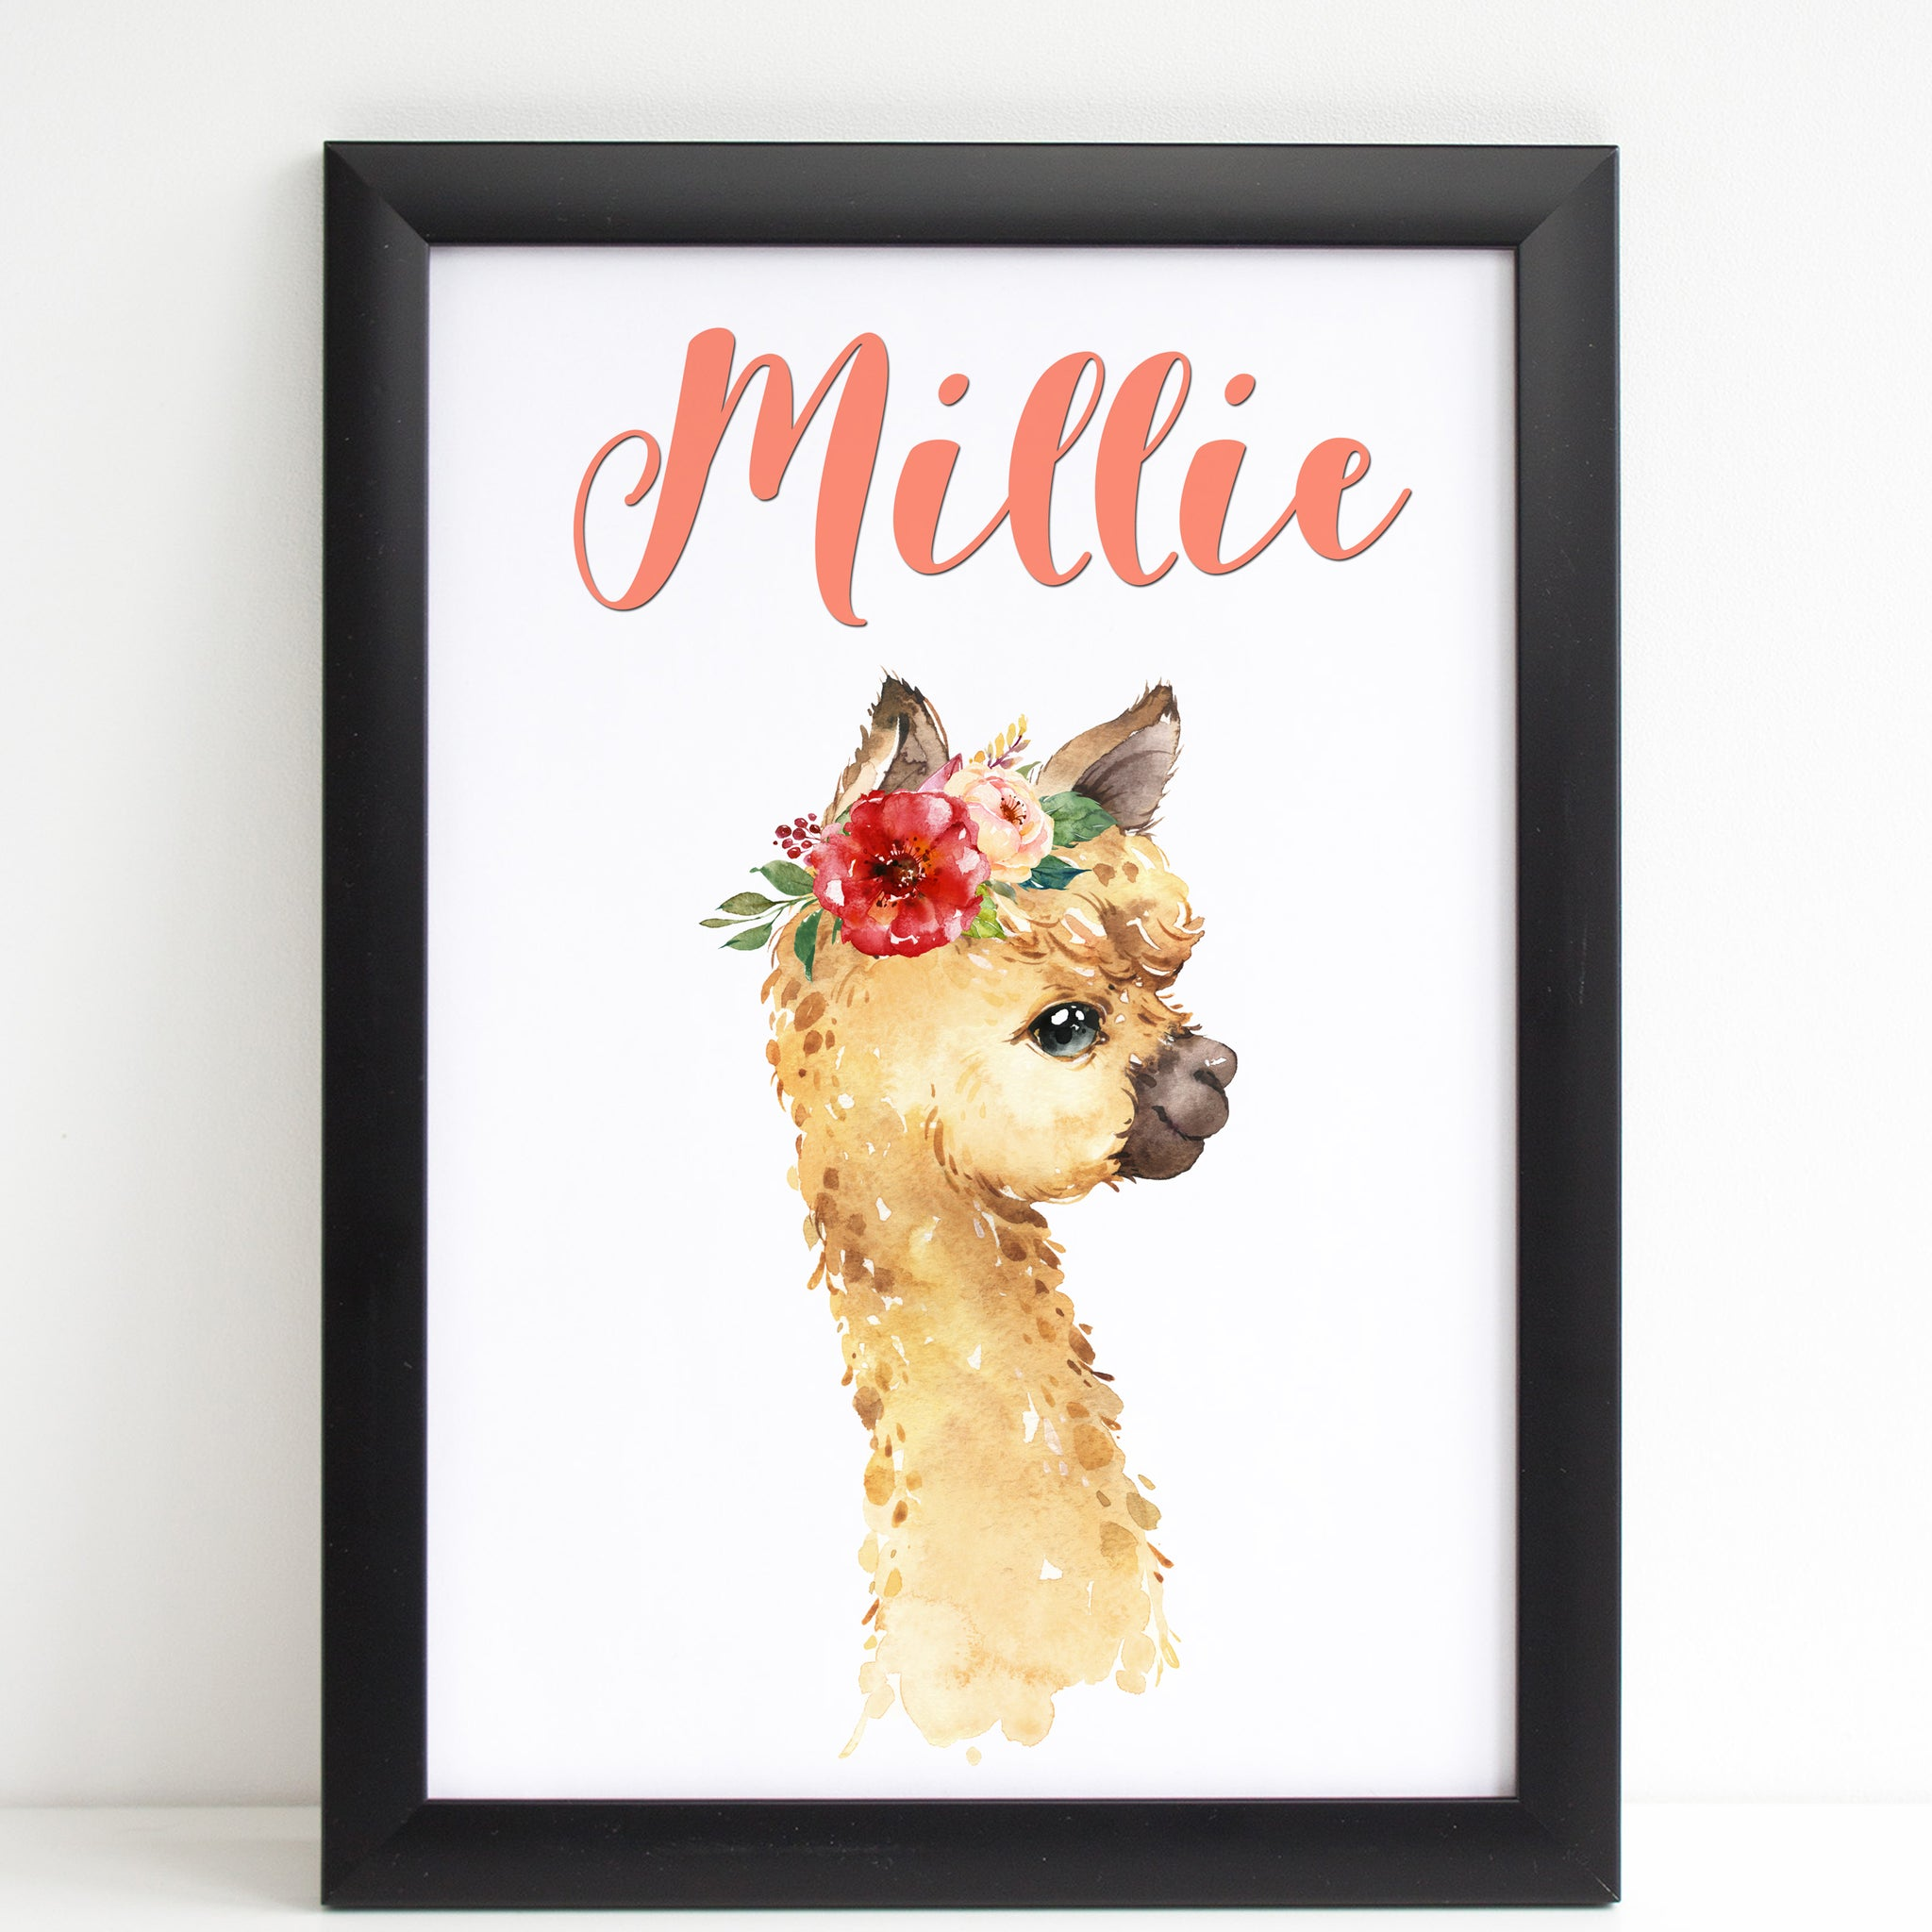 Baby Brown Llama Print, Cute Personalised Animal Print for Kids, A4 or A3